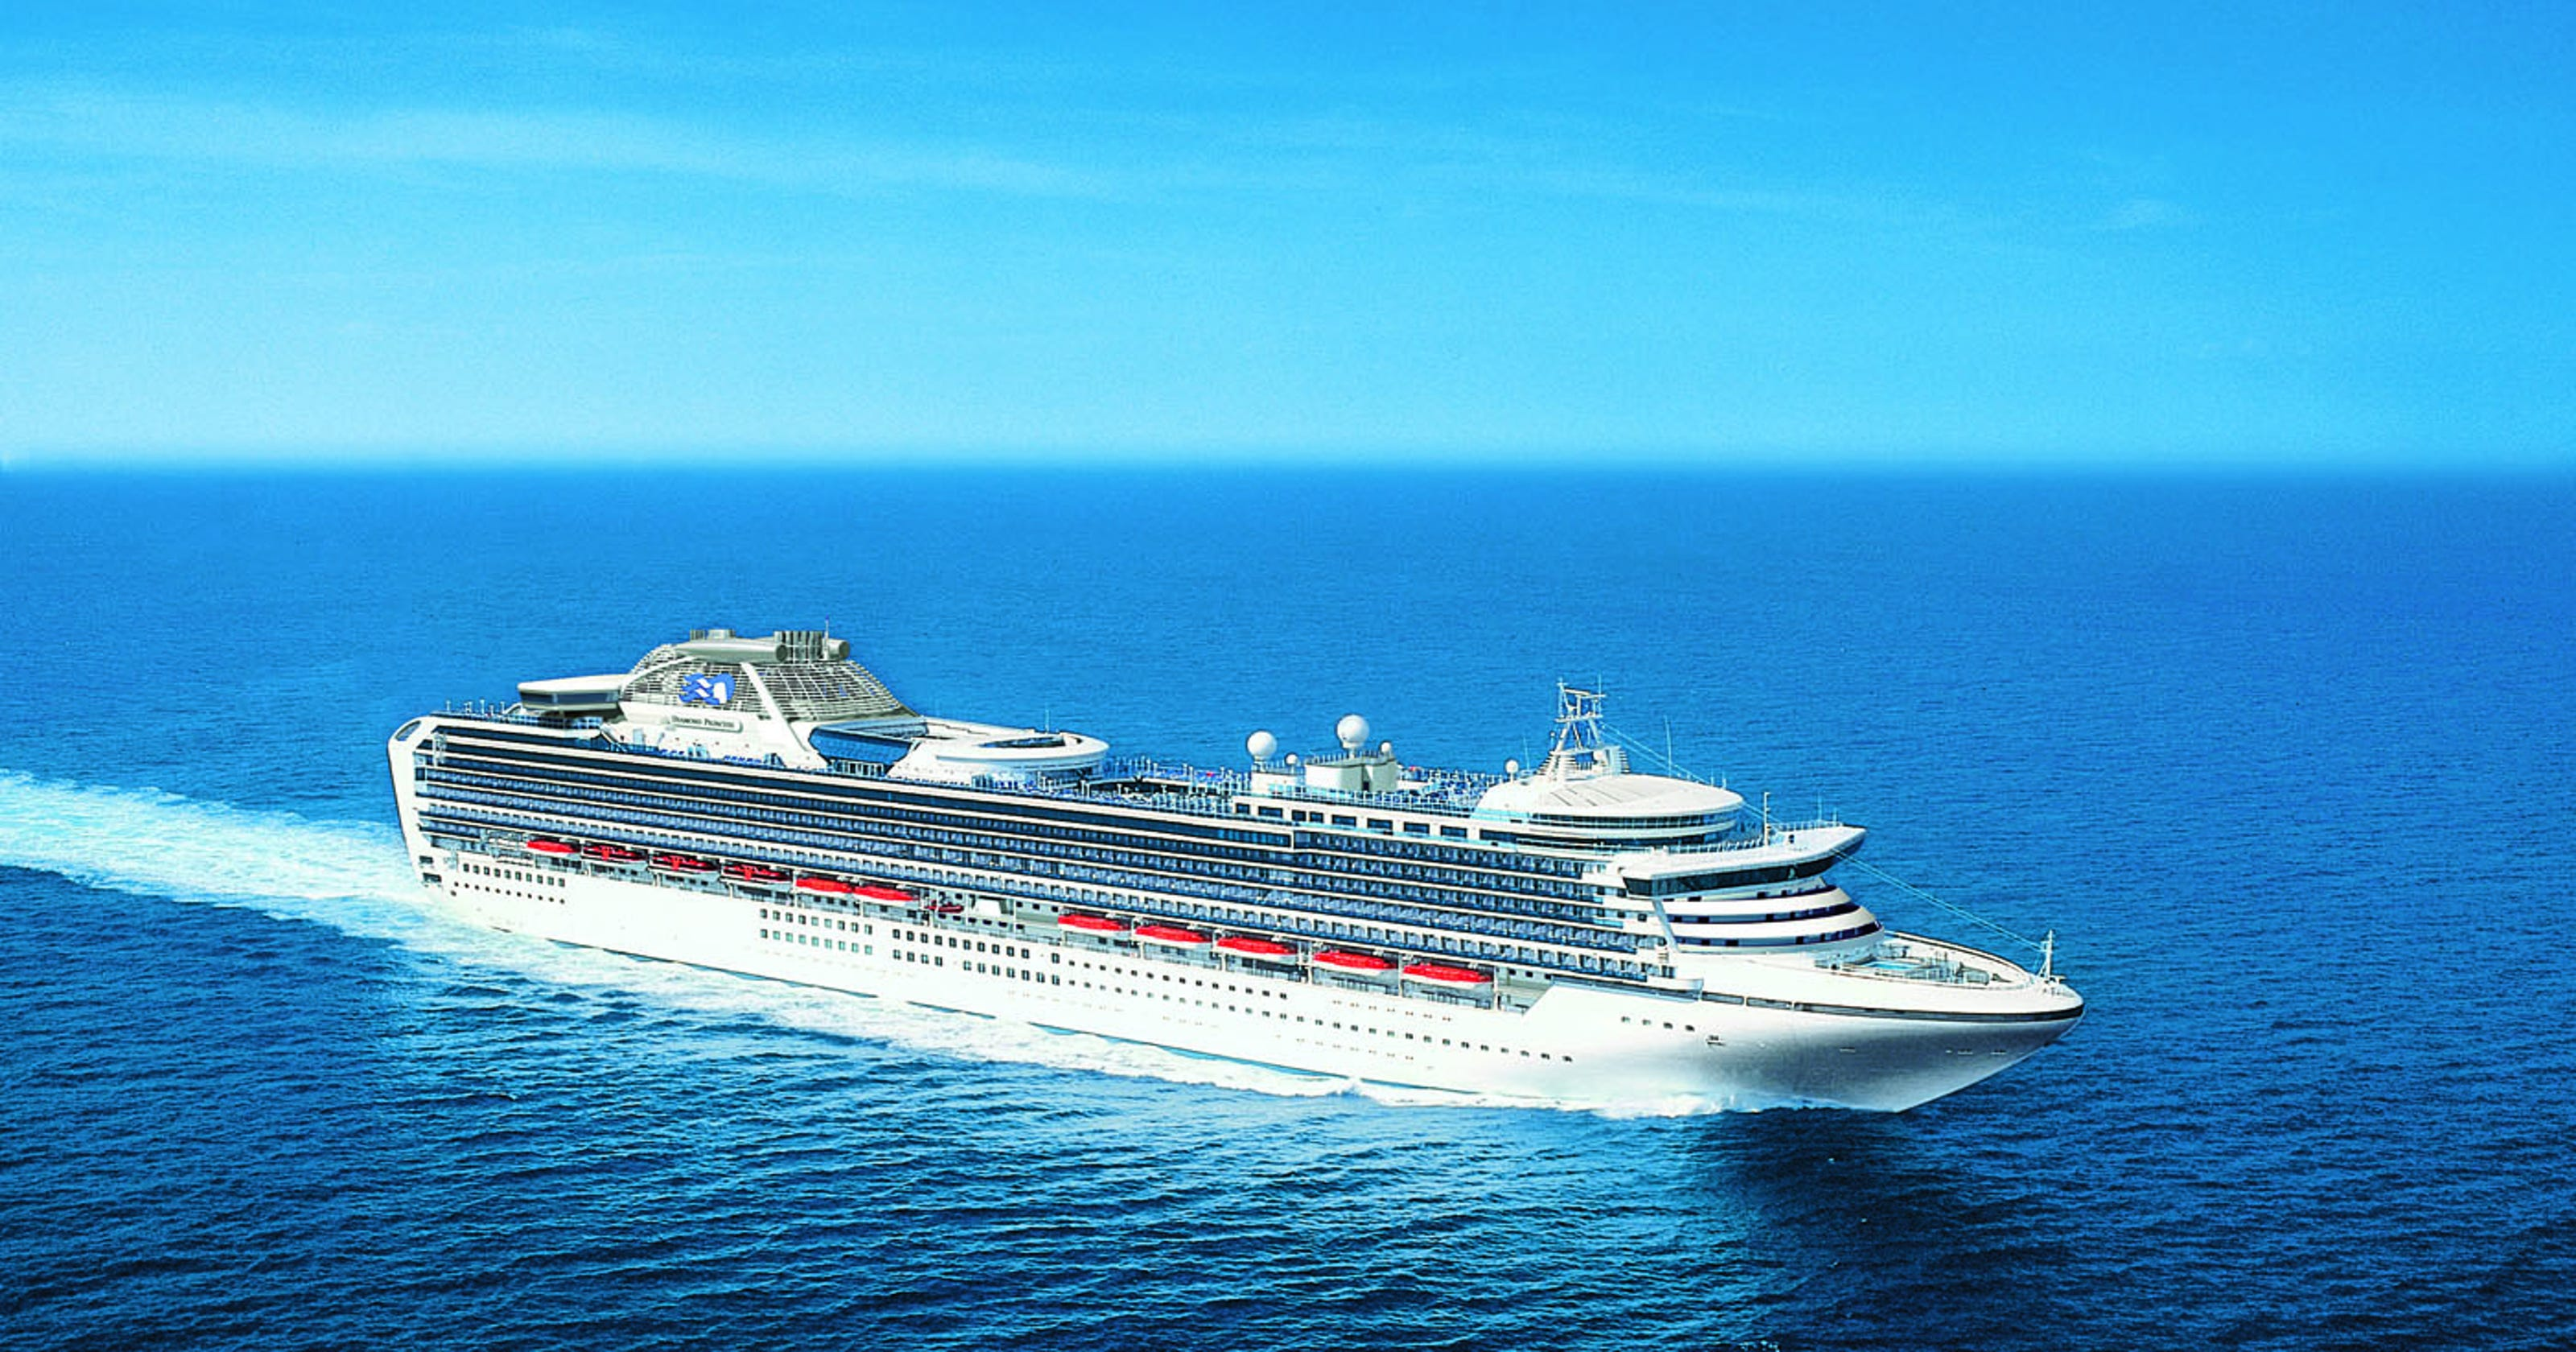 Cruise ship tours: The revamped Diamond Princess